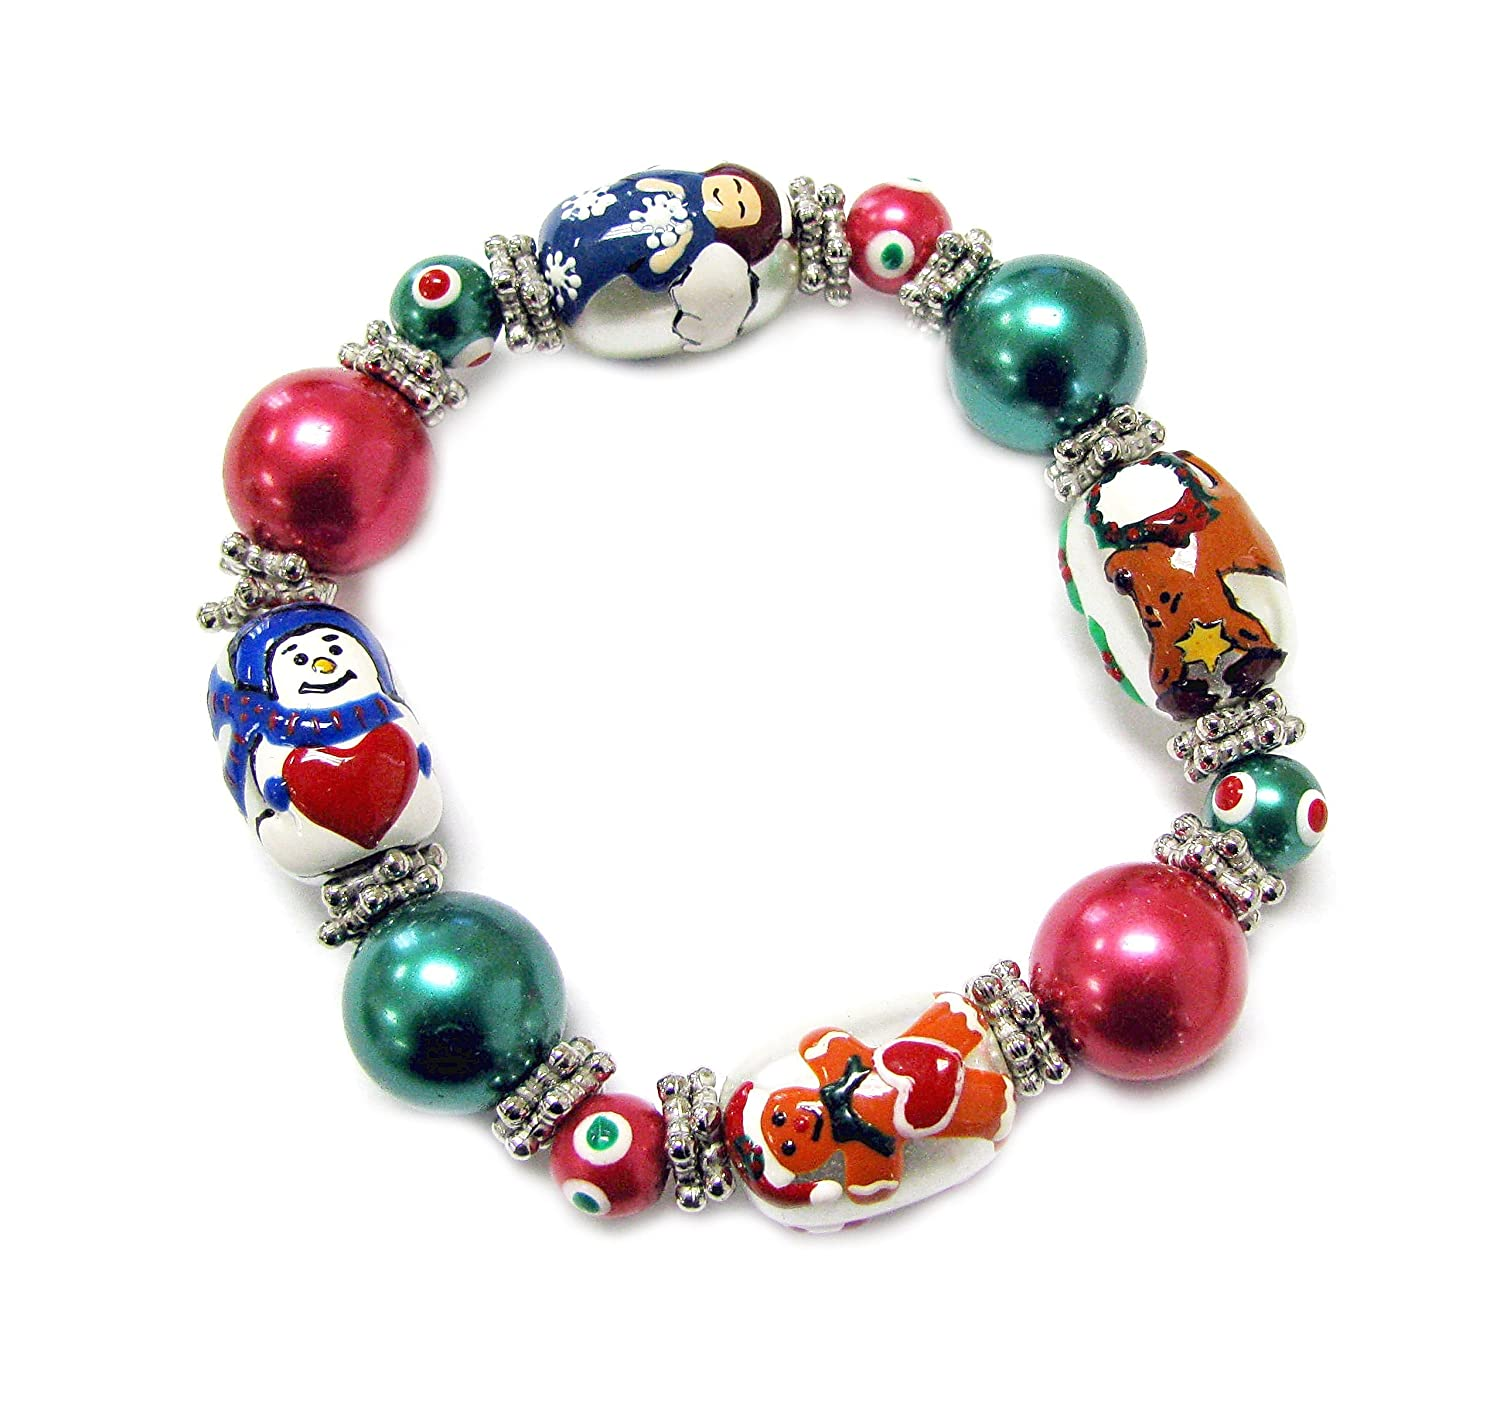 Linpeng Hand Painted Reindeer Angel Gingerbread Man Snowman Glass Beads Stretch Bag Iup 13 6 Christmas Bracelet Pearly Mixed Colors